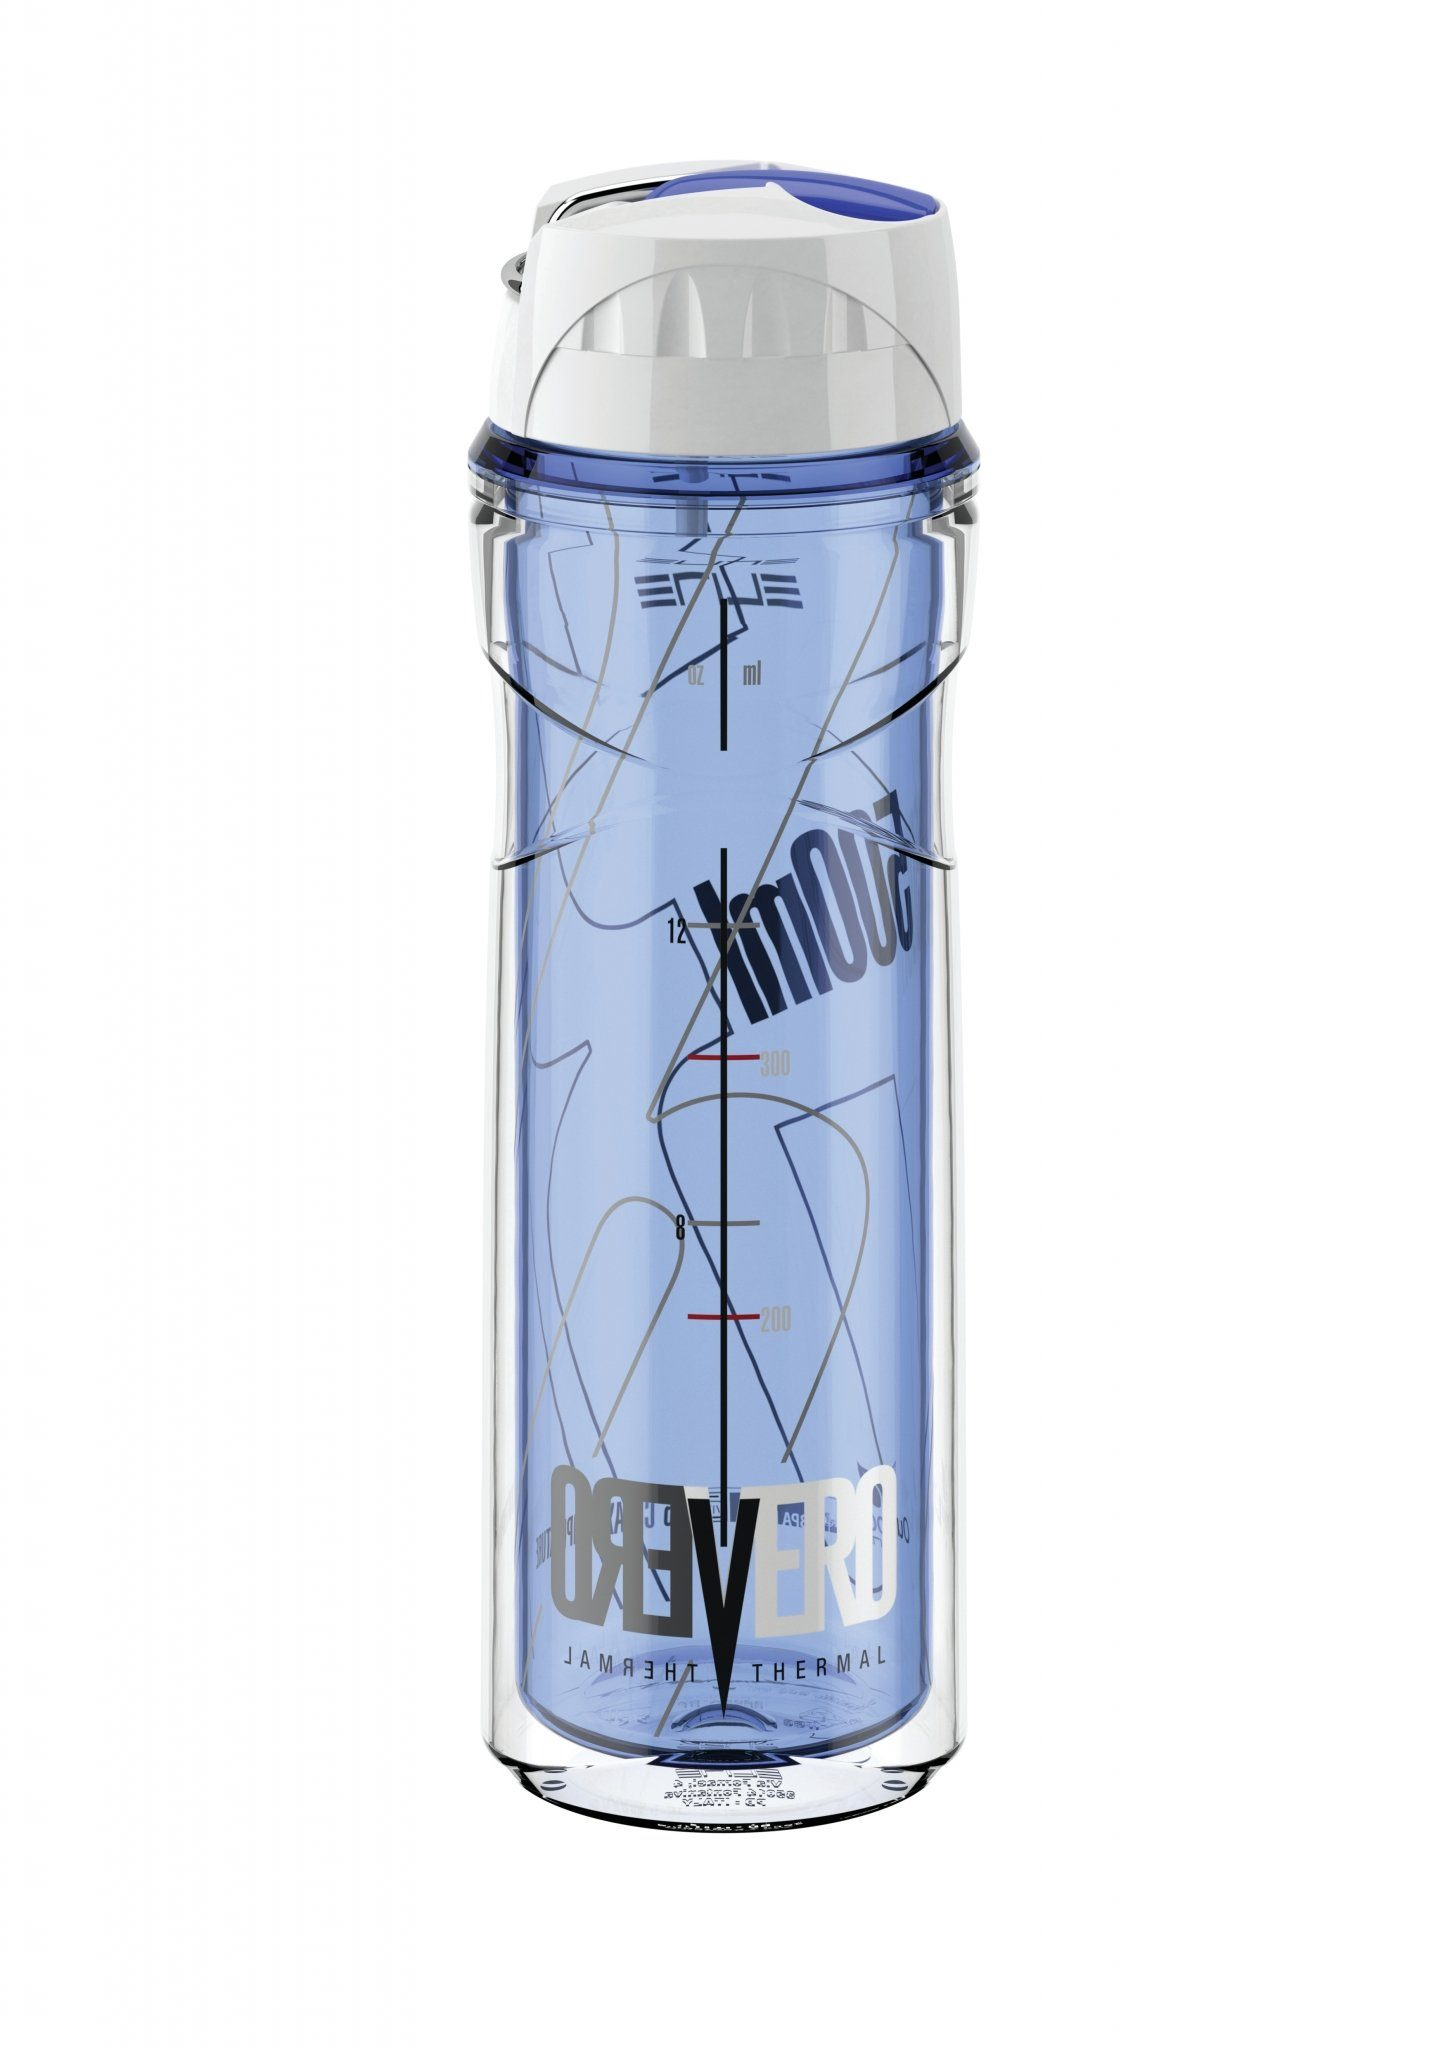 Elite Trinkflasche »Vero Thermal Thermoflasche 500ml«